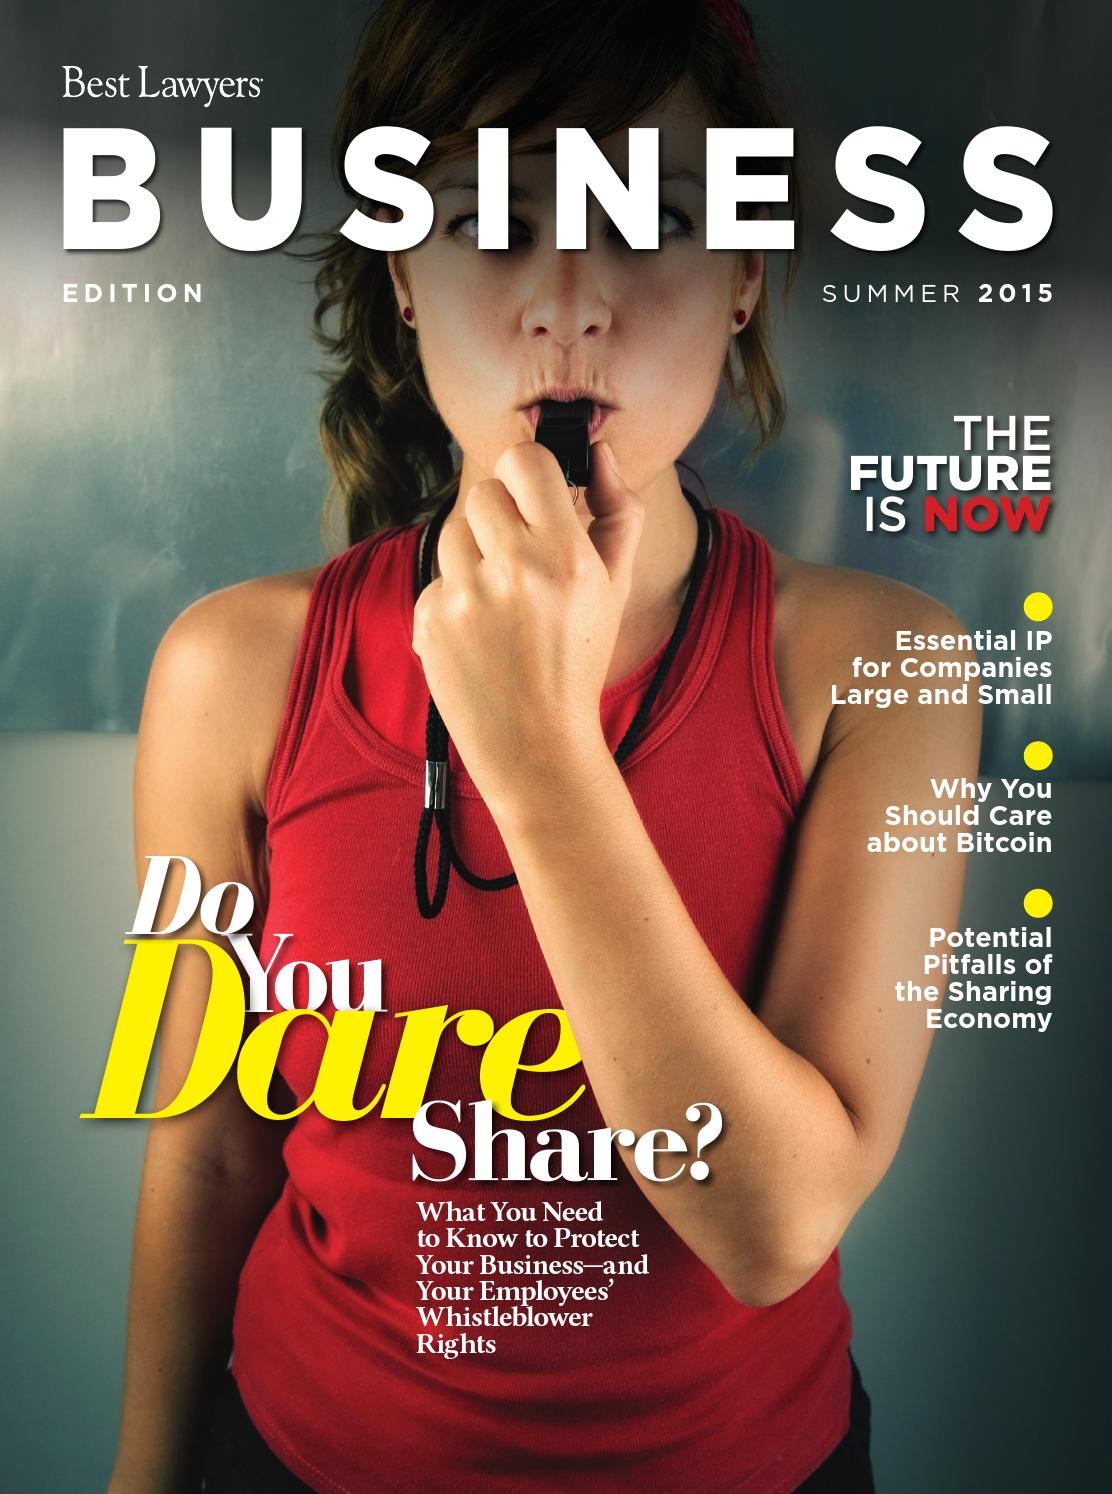 Best Lawyers Summer Business Edition 2015 By Best Lawyers